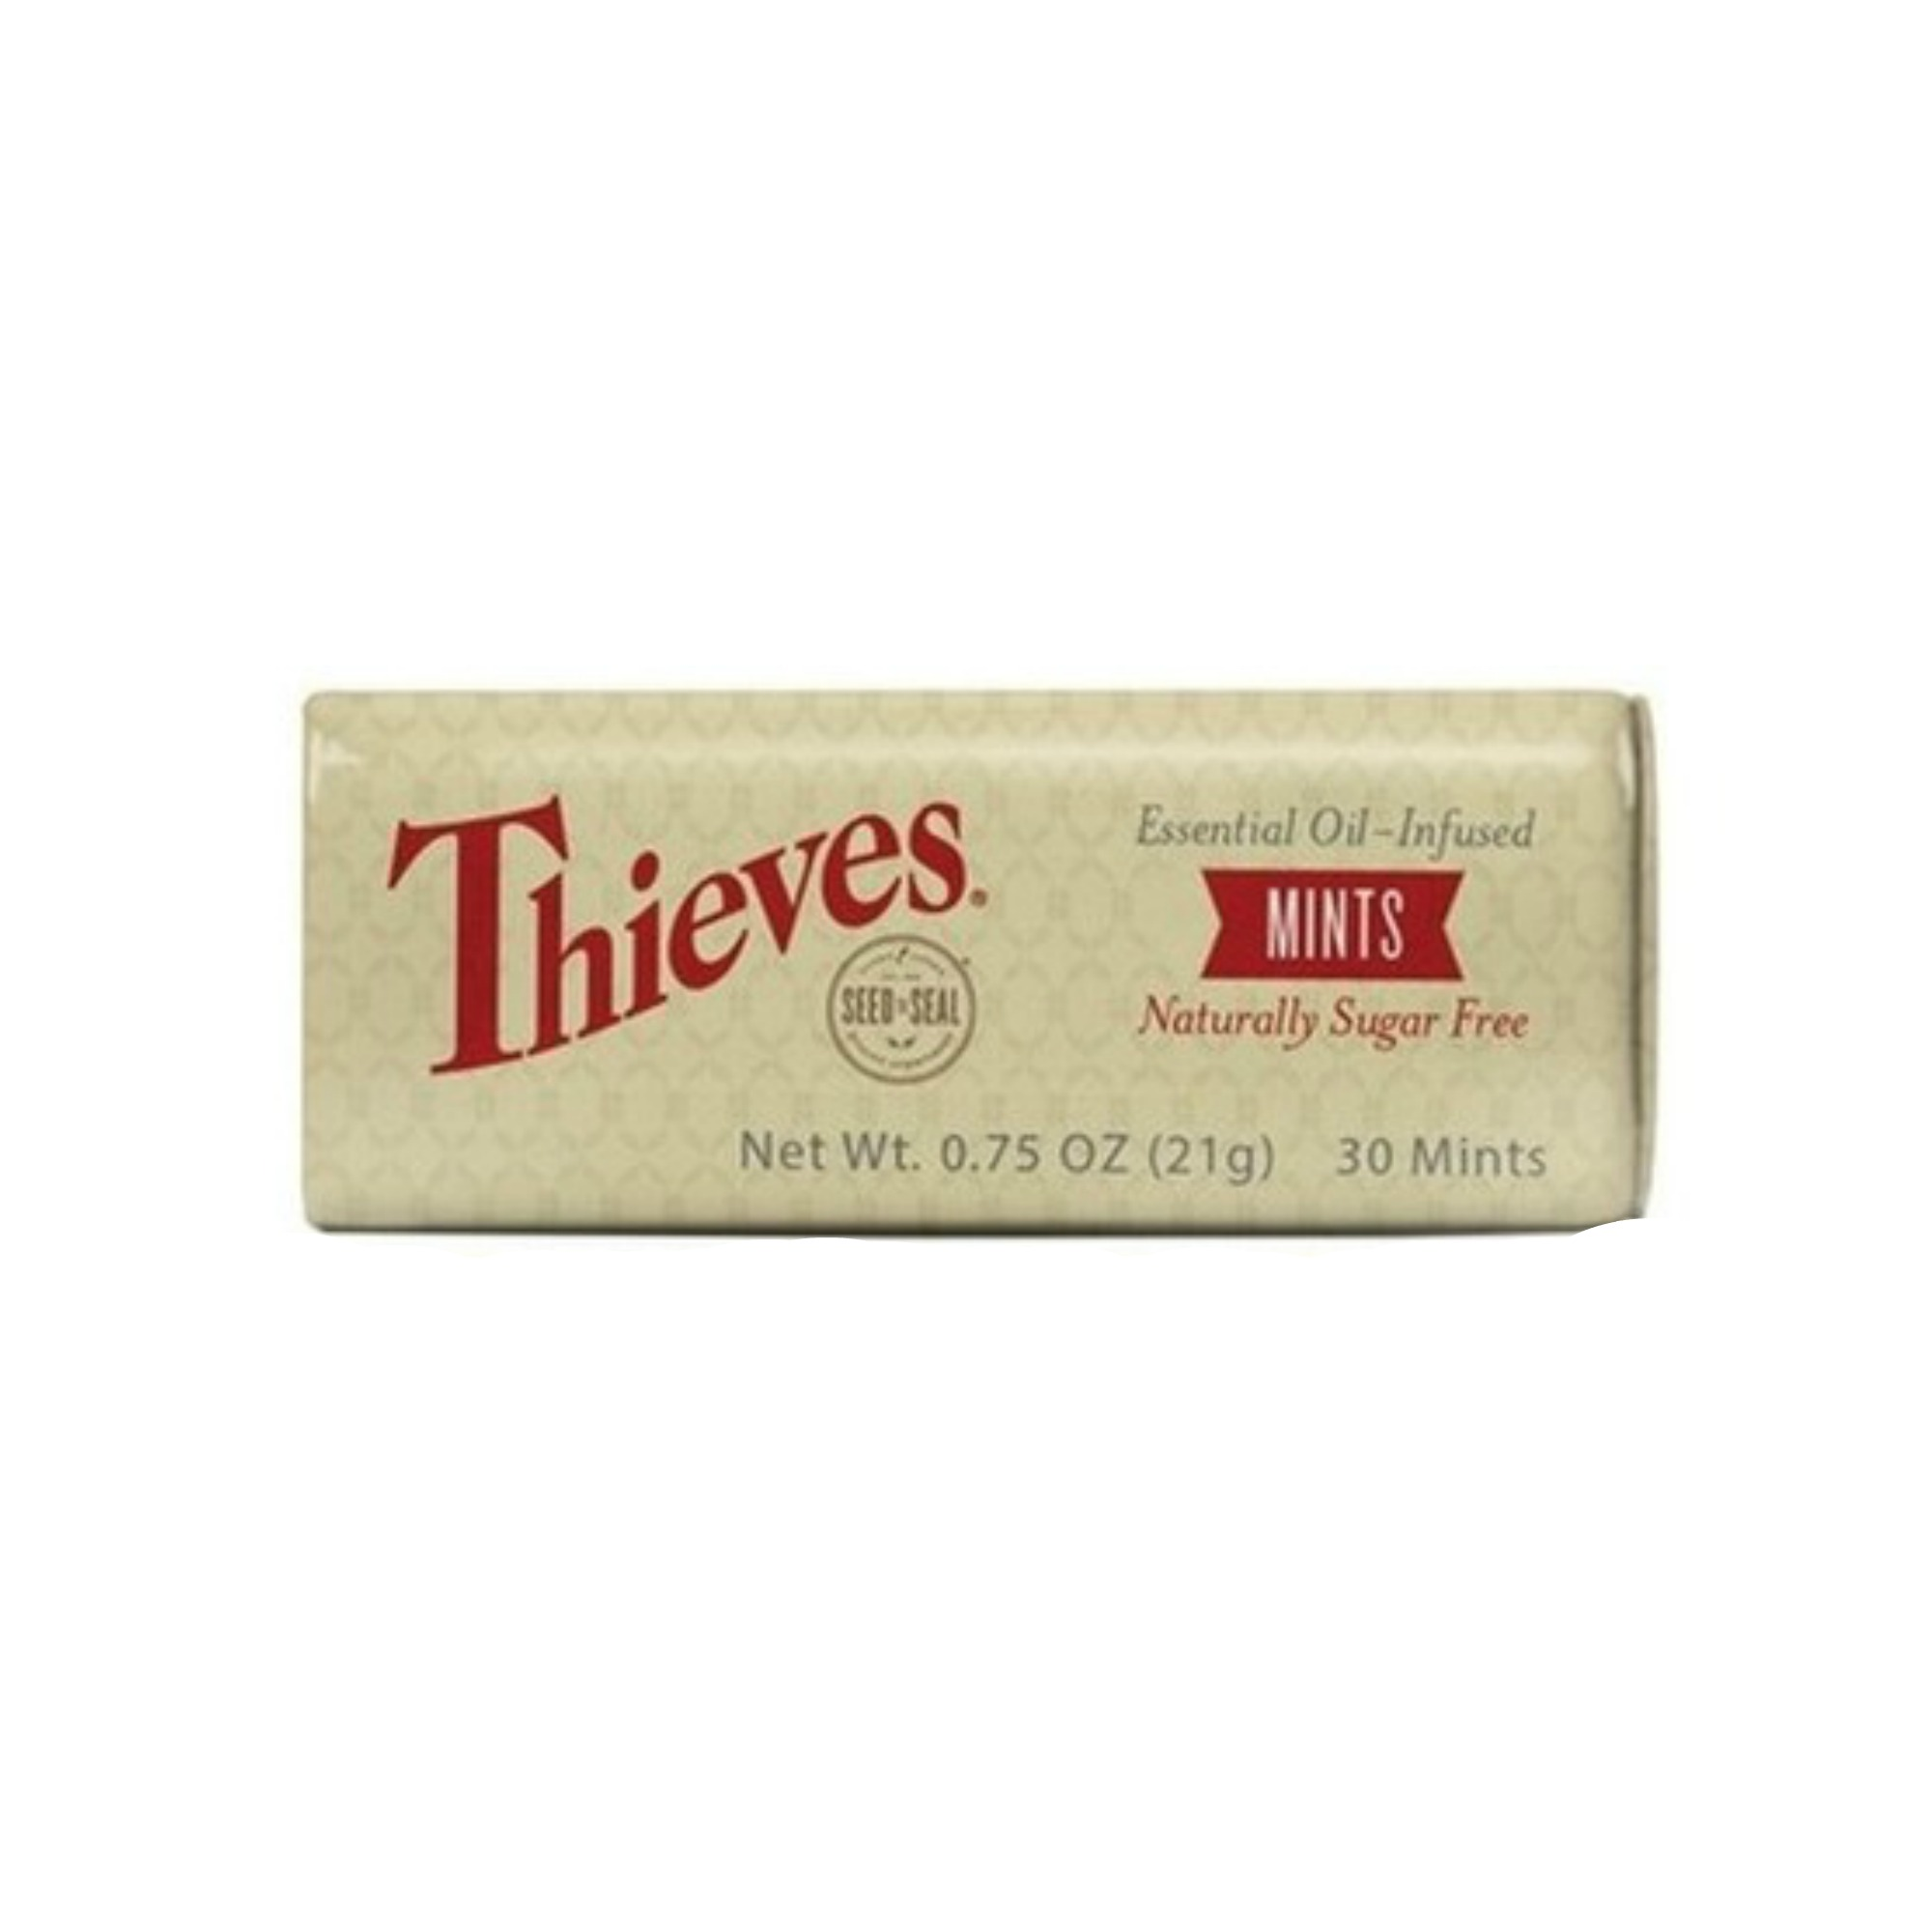 THIEVES MINTS    Made from naturally derived ingredients and free of artificial sweeteners, dyes, and preservatives, Thieves Mints are a choice that you can feel good about. Thieves Mints contain Young Living's popular Peppermint essential oil and Thieves essential oil blend to create the perfect combination of minty coolness with a hint of warm, sugar-free sweetness.   Click here   to learn more about this product.